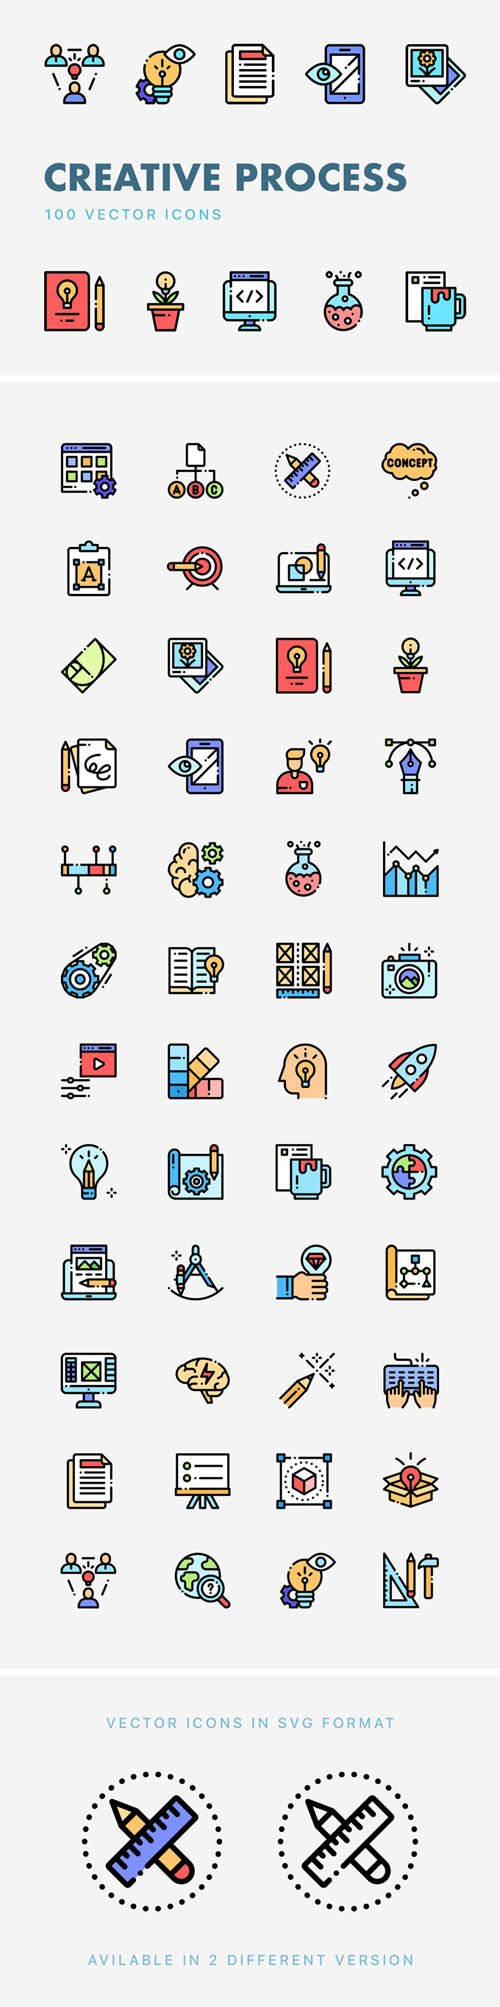 Creative Process 100 Vector Icons